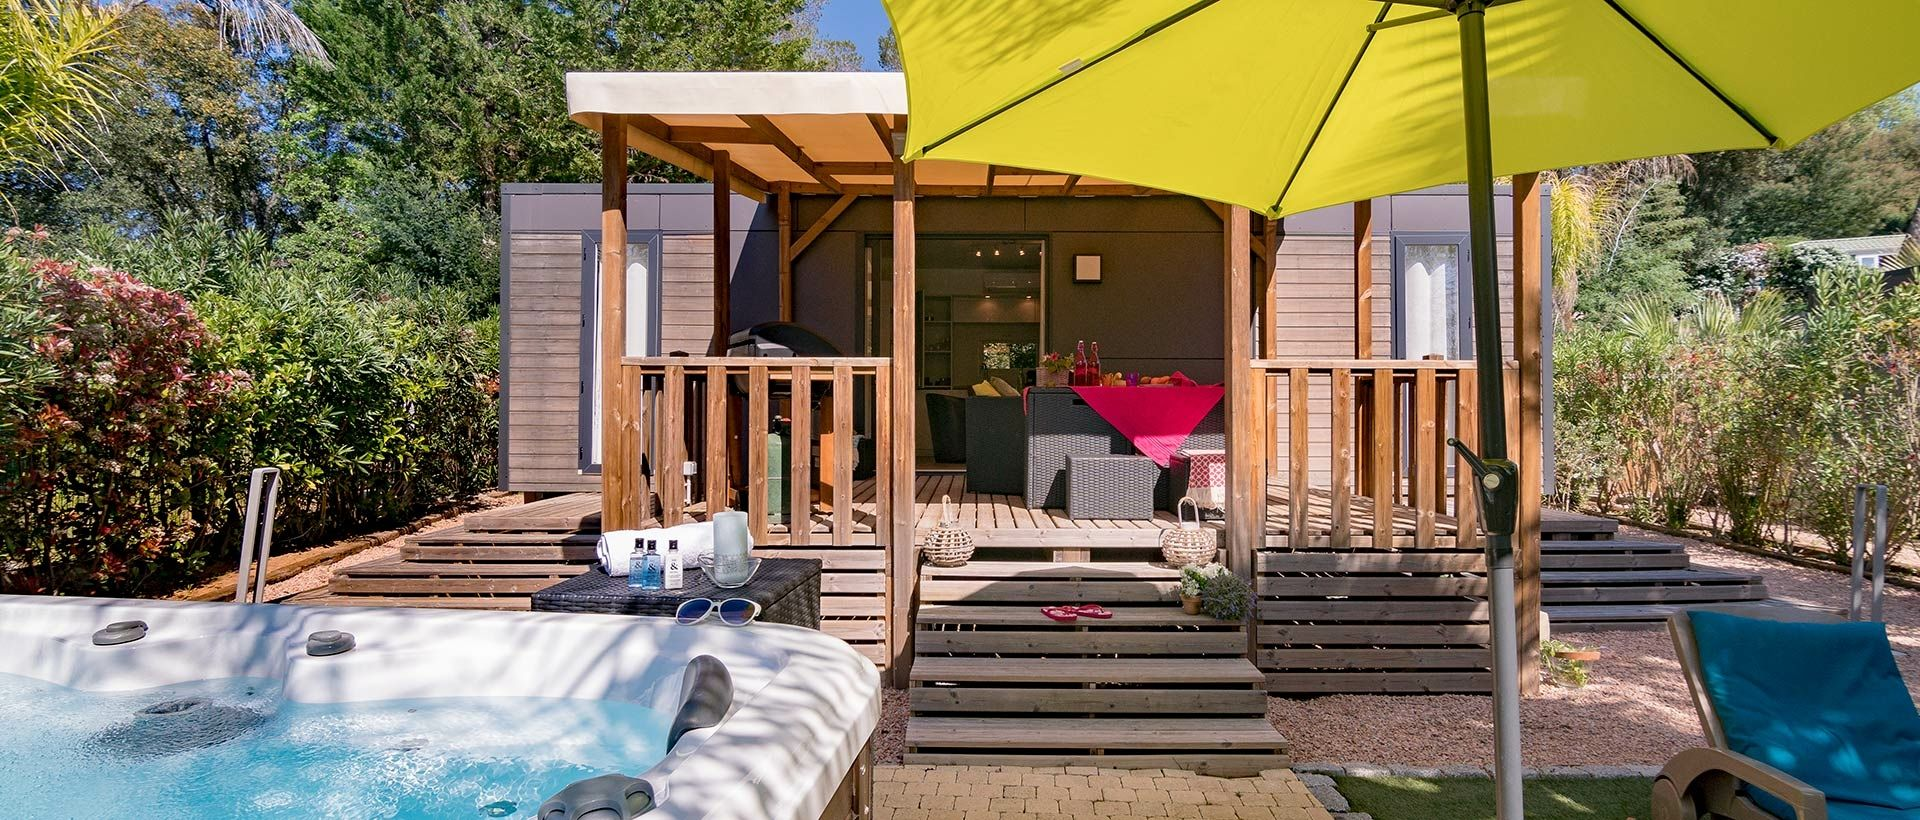 Camping Mobile-home de lujo con spa